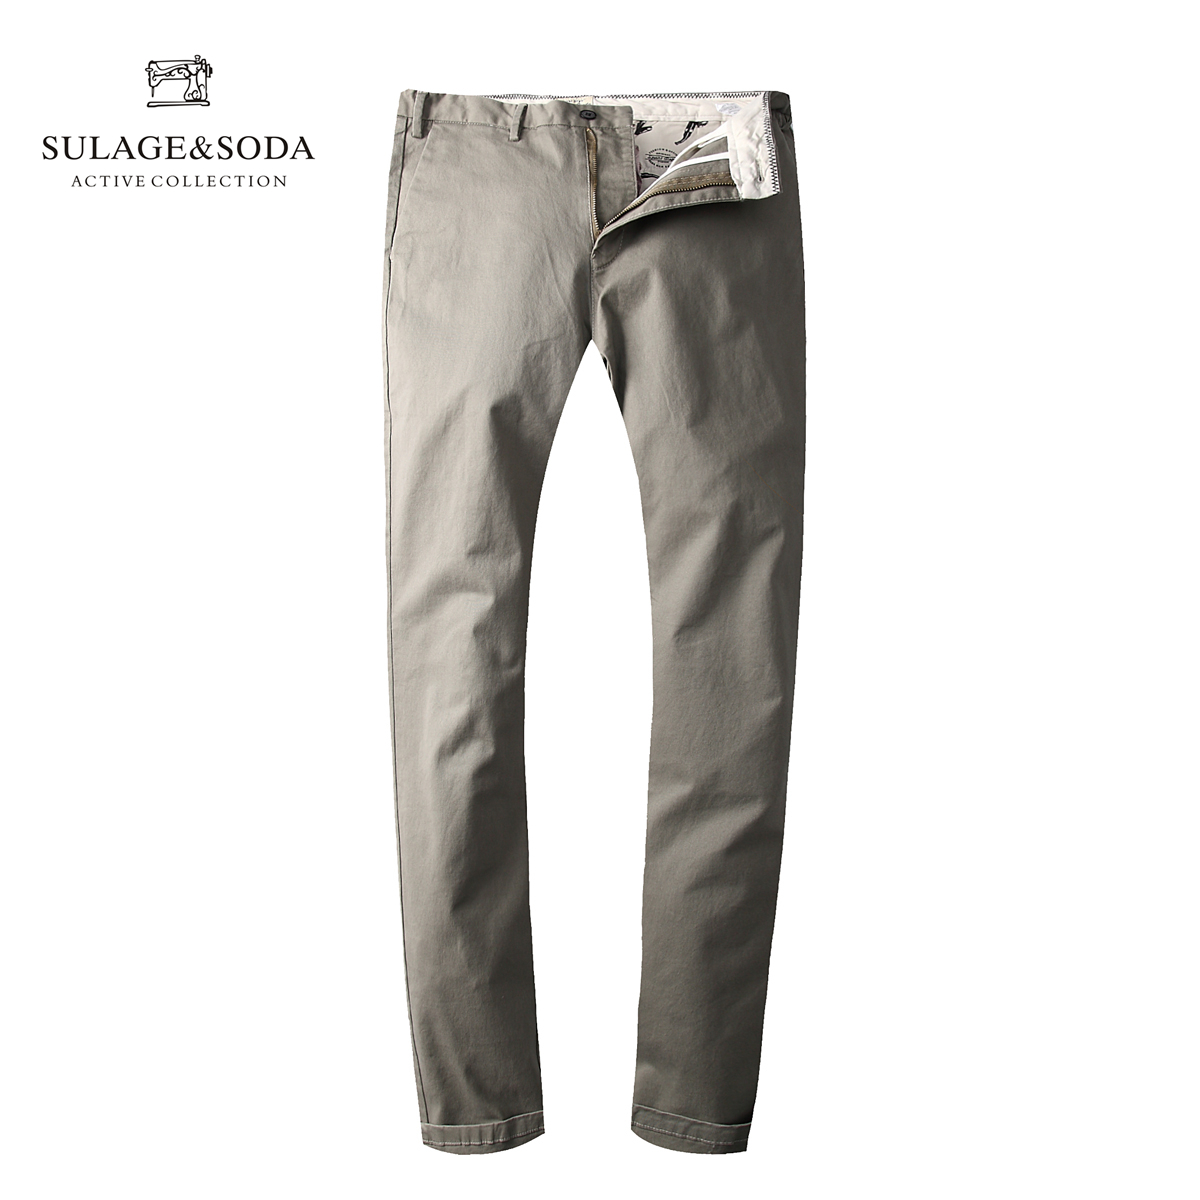 Scotland soda autumn and winter new foreign trade original casual pants mens trousers imported big brand micro elastic pants